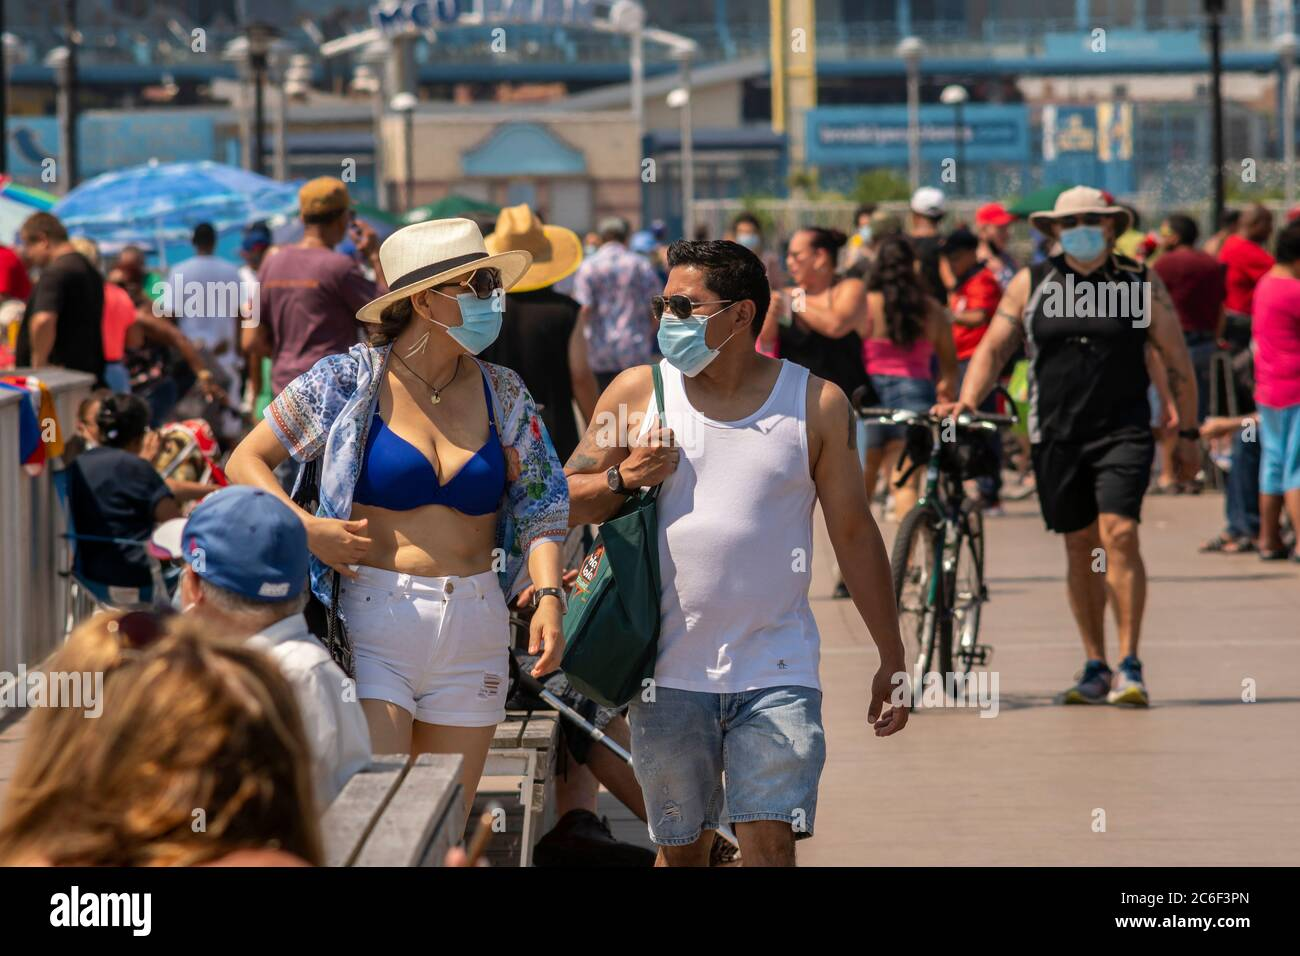 Thousands of beachgoers generally observe social distancing as they try to beat the heat and humidity at Coney Island in Brooklyn in New York on the long Independence Day weekend, Sunday, July 5, 2019.  (© Richard B. Levine) Stock Photo